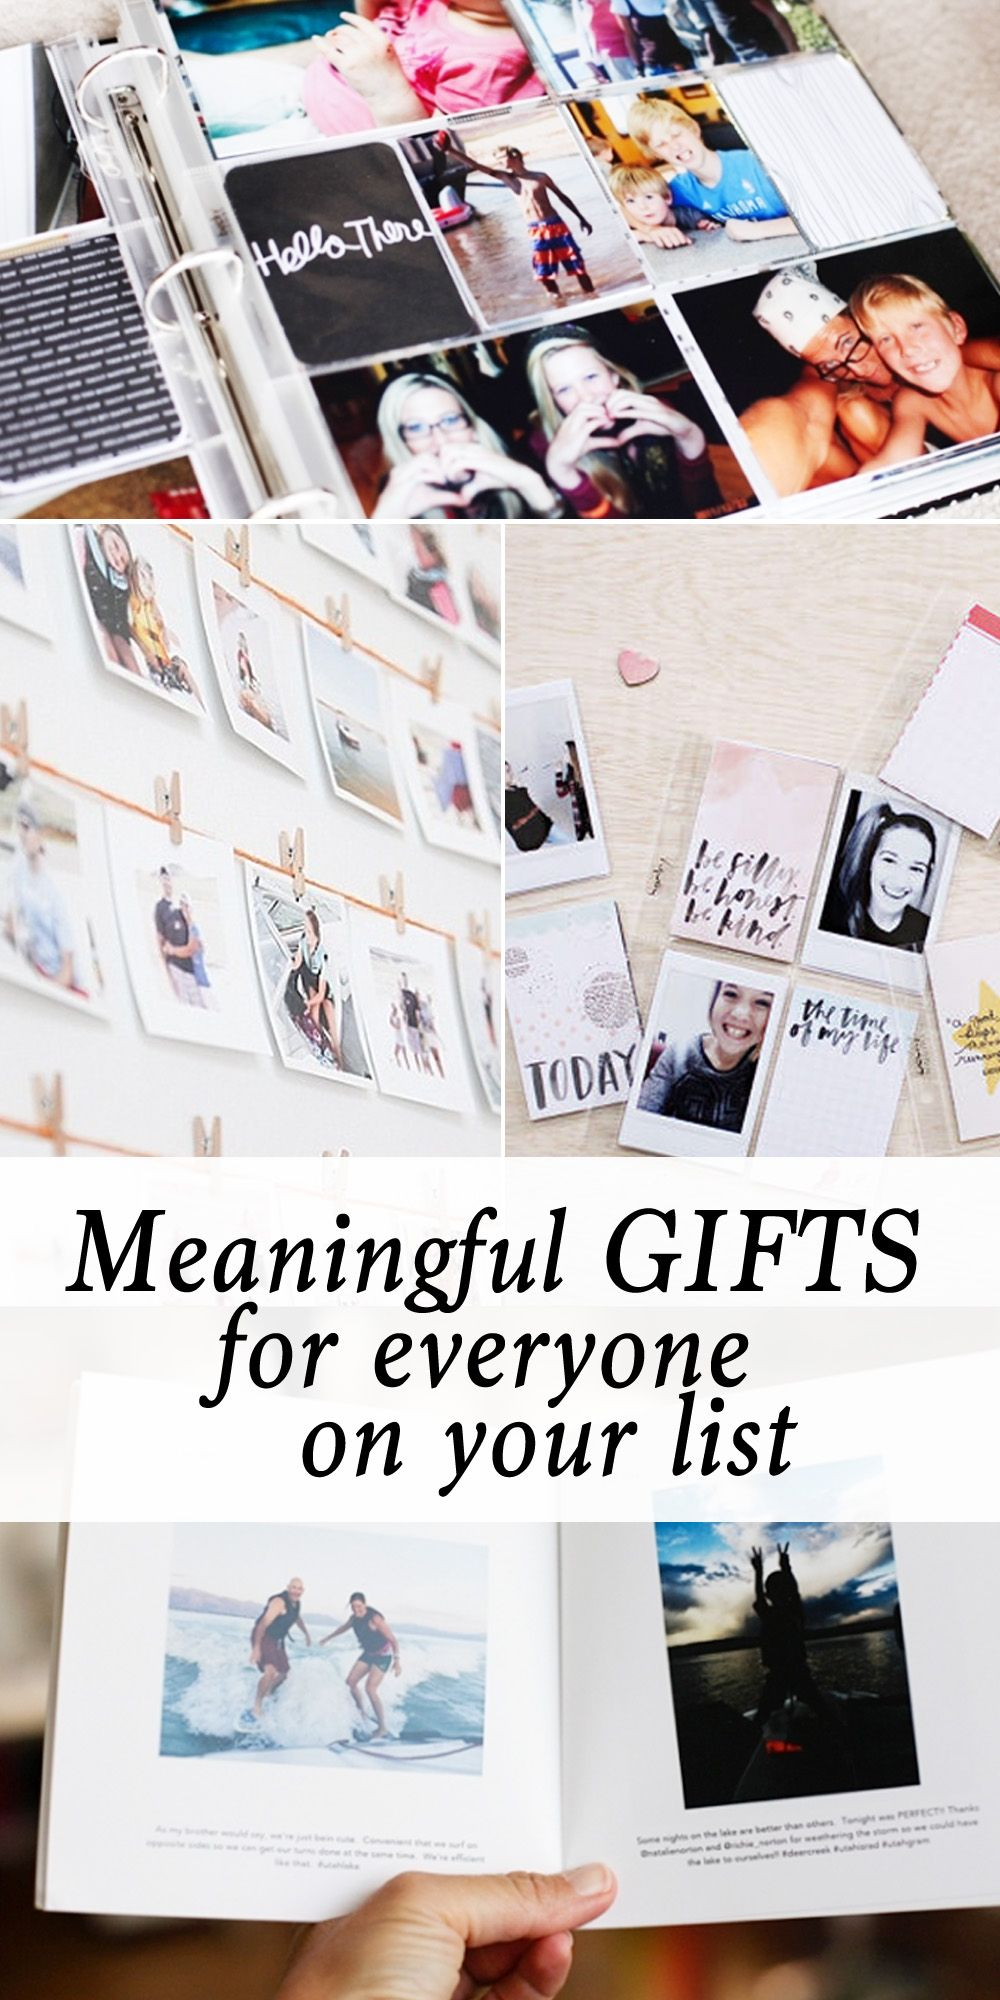 Meaningful gifts using Photos! | Bloggers Best | Pinterest | Gifts ...